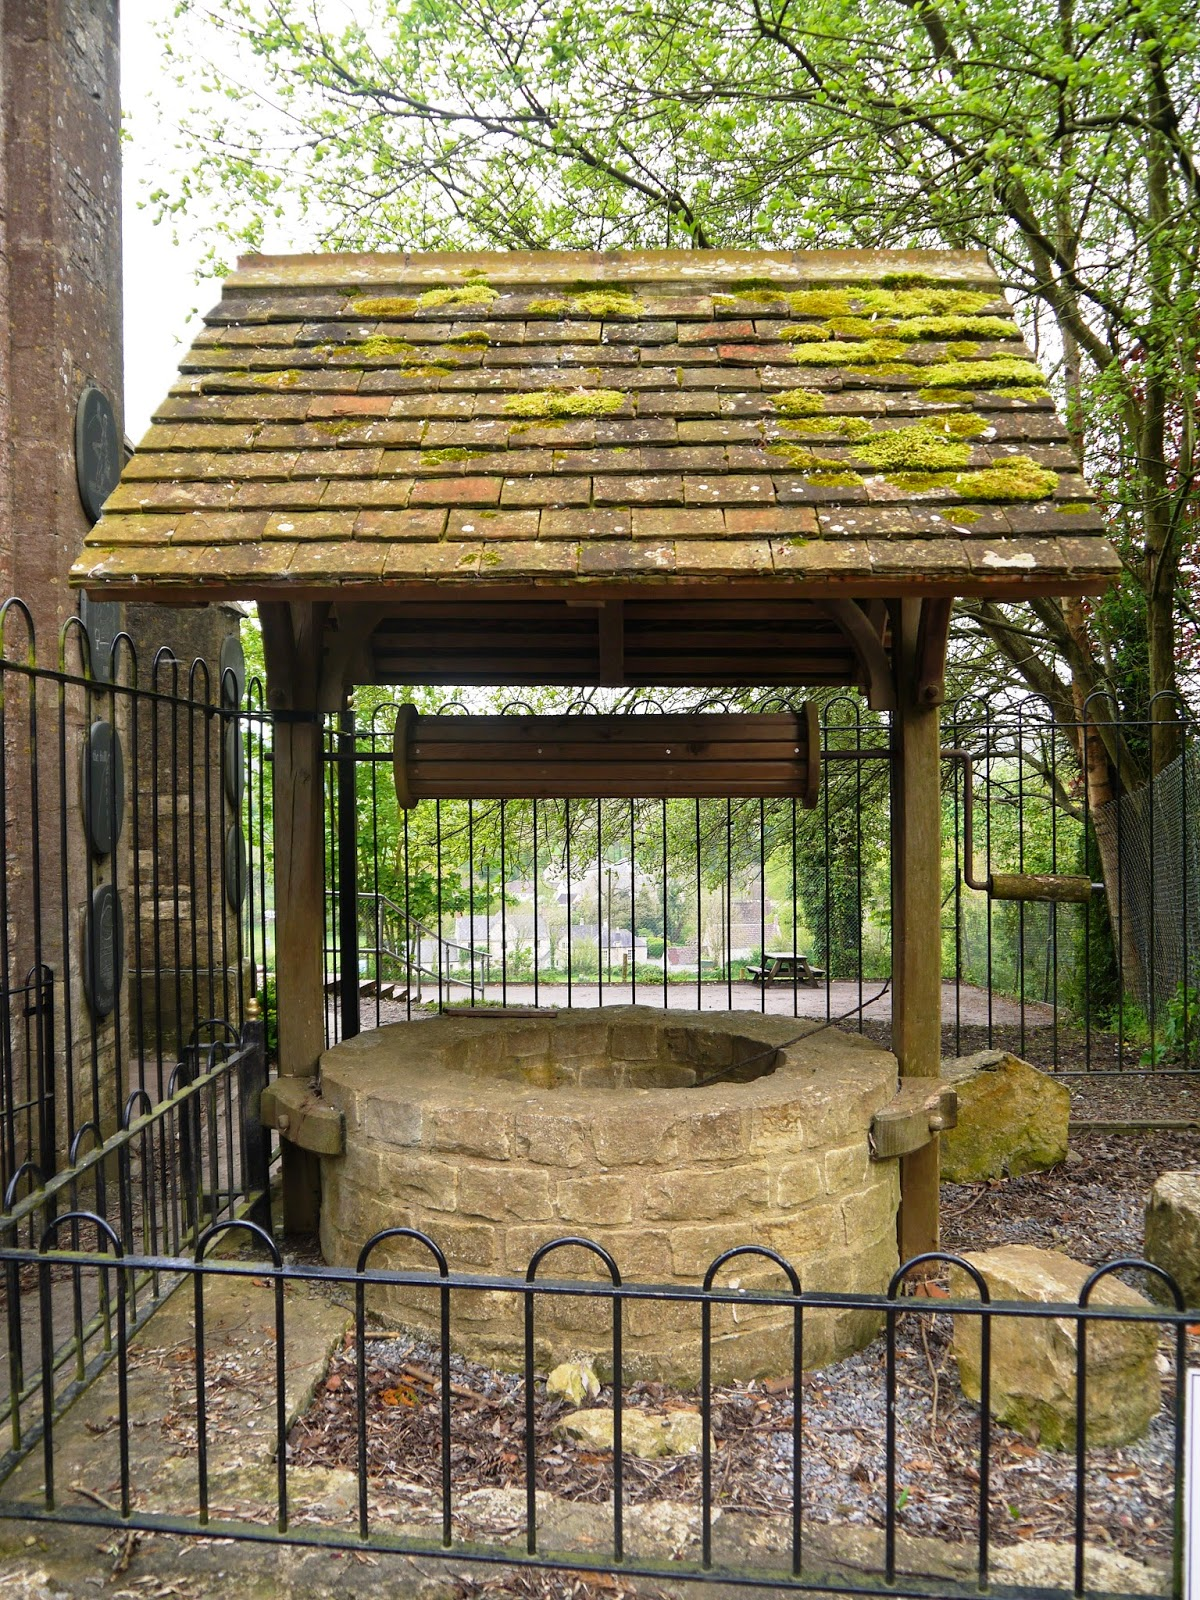 The well at the top of Jack and Jill Hill, Kilmersdon